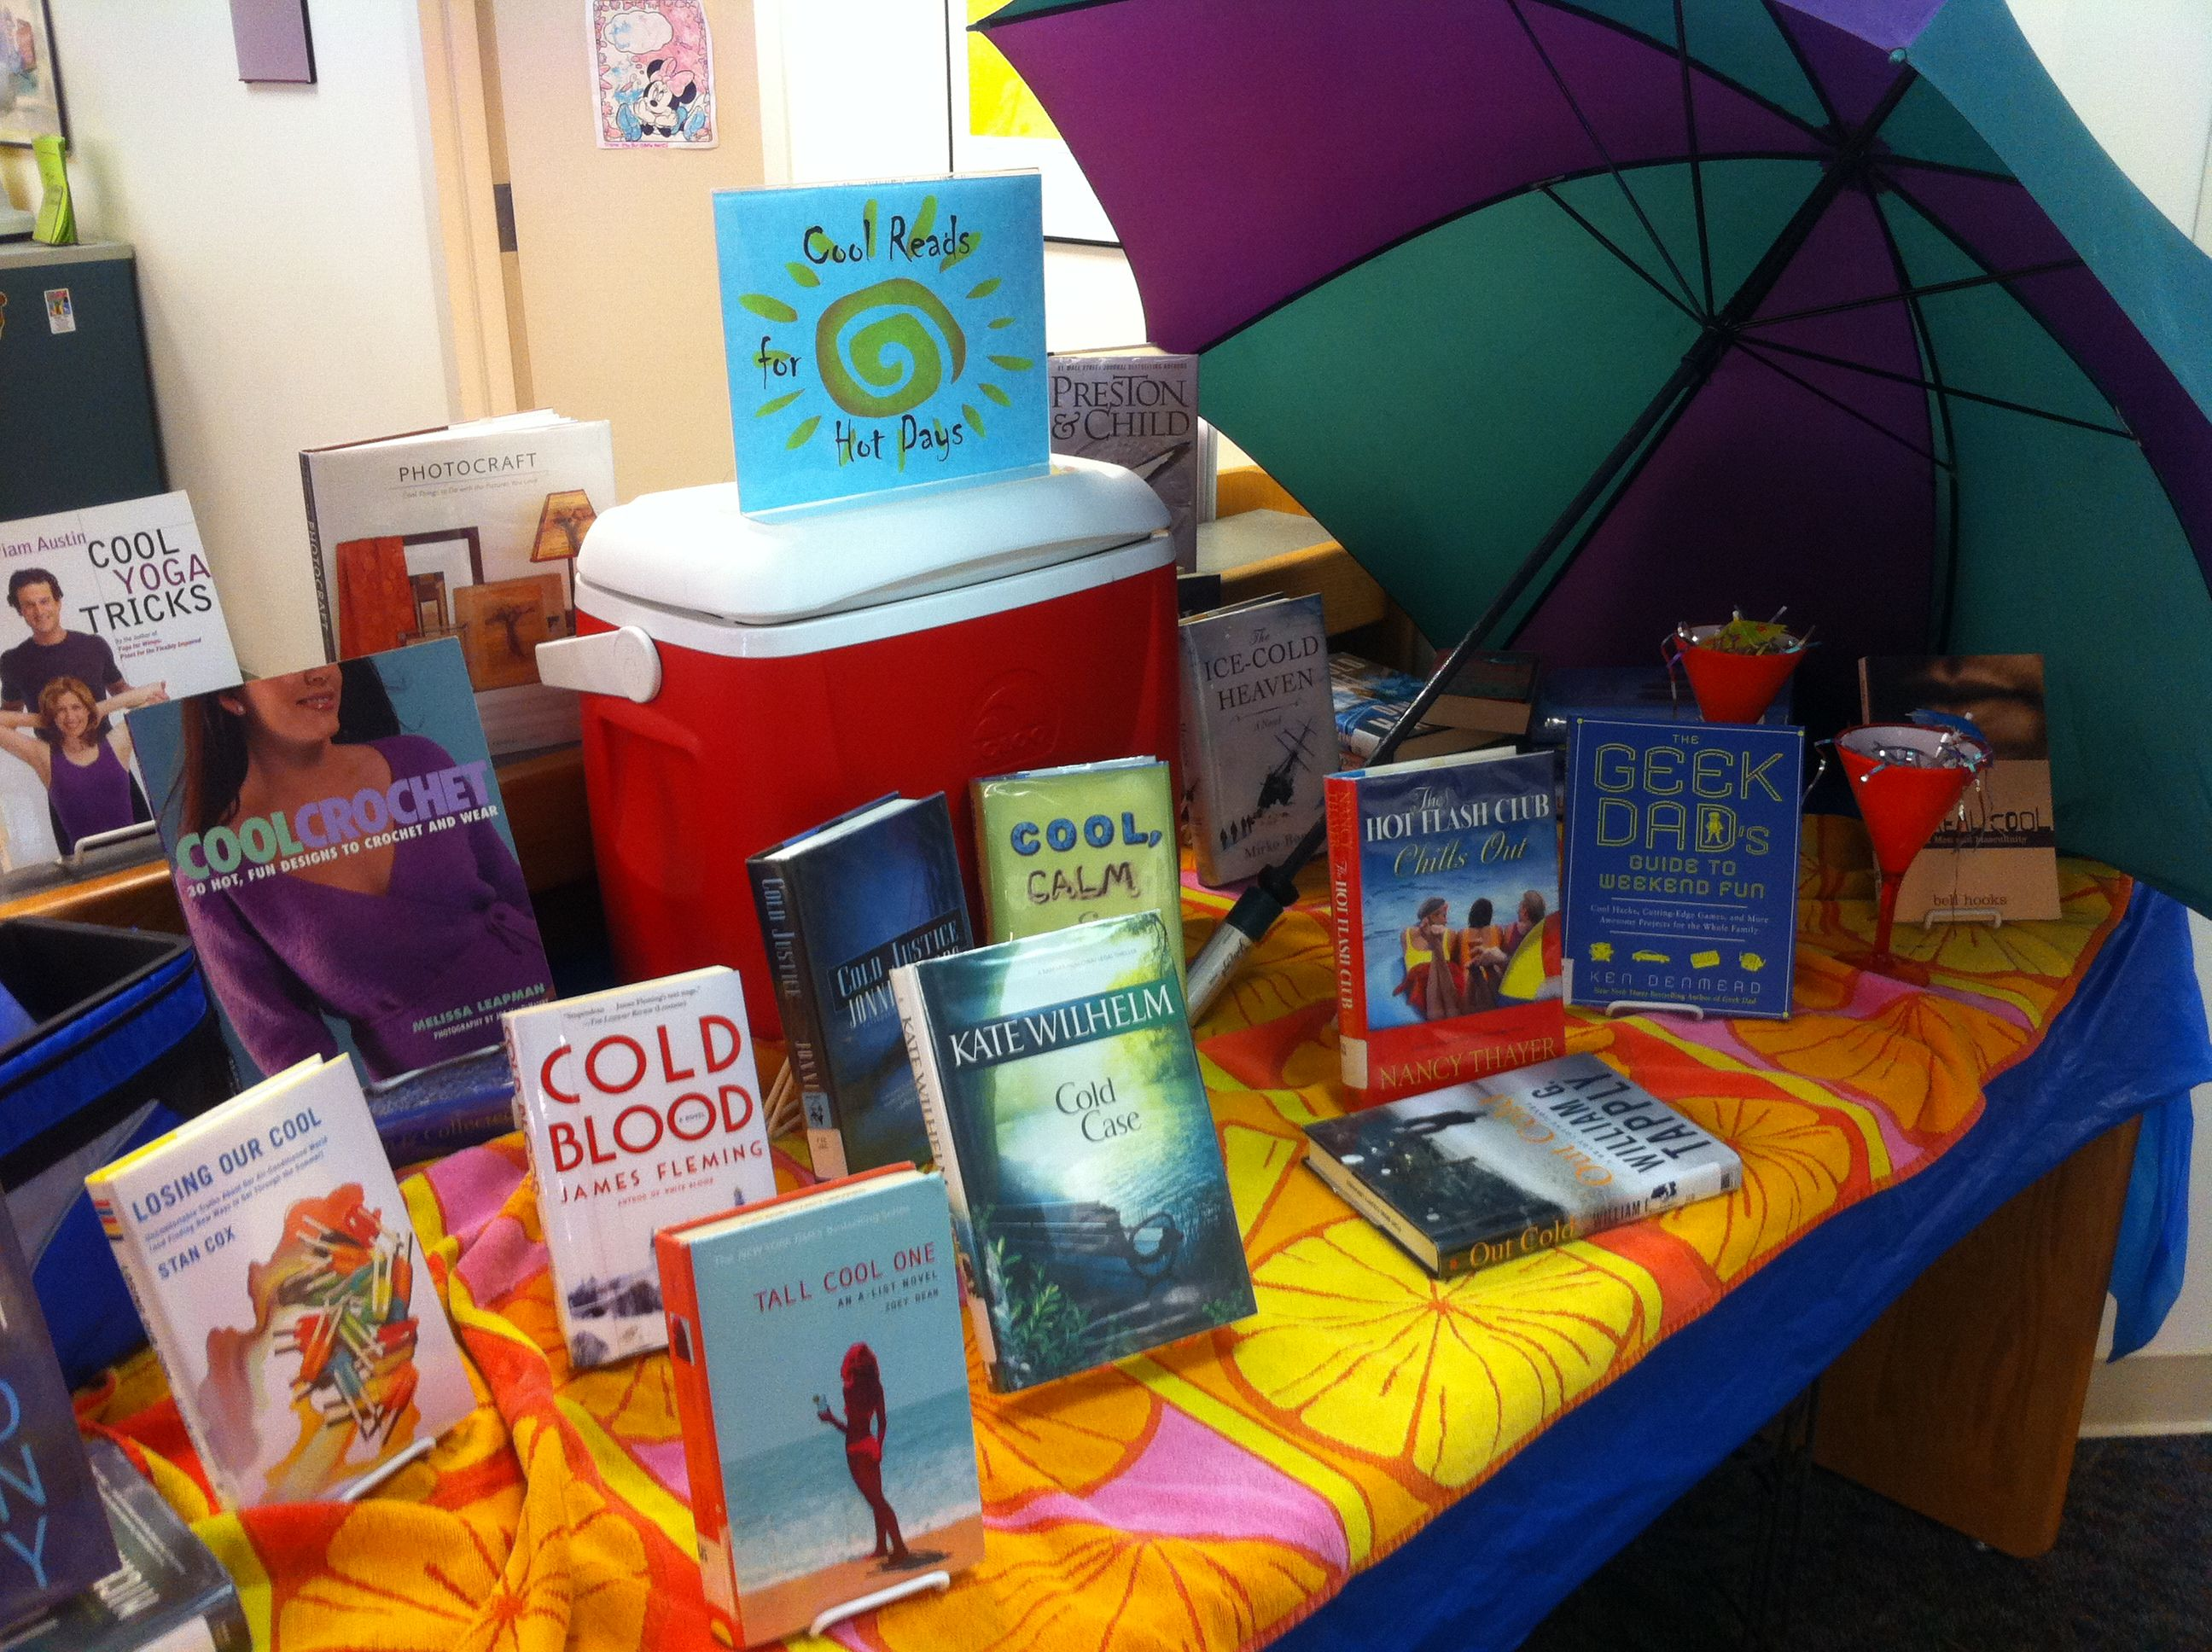 Cool reads for hot days display  | Library stuff | Autumn summer